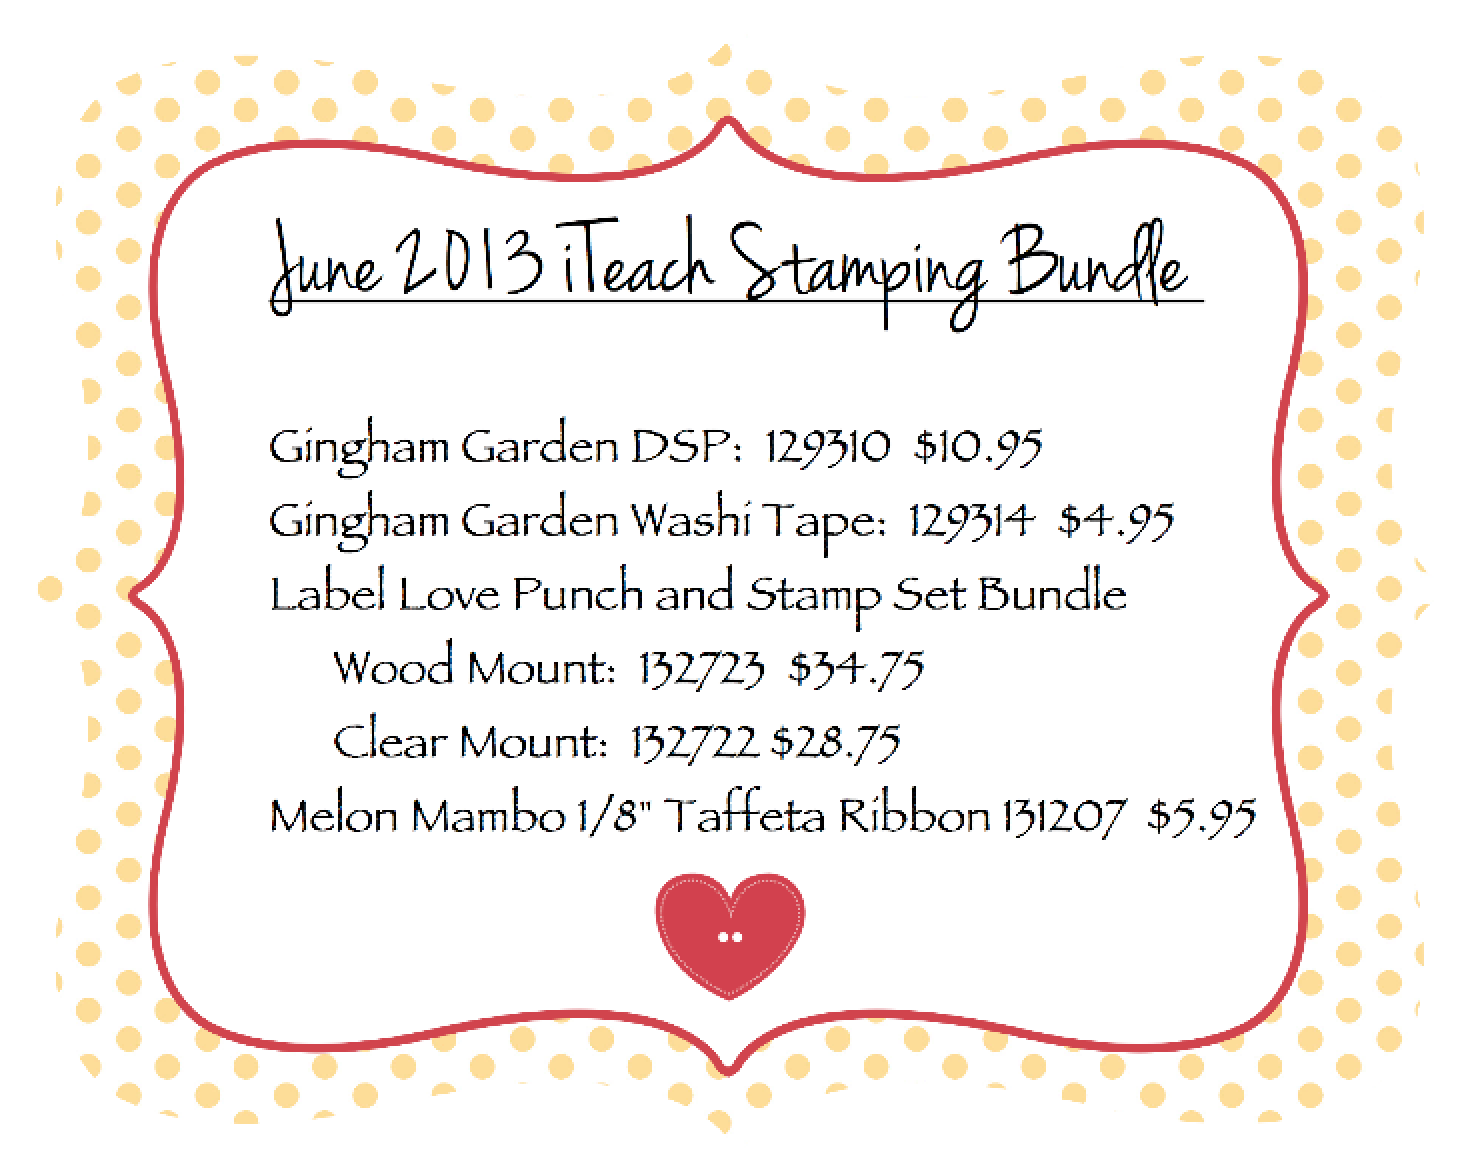 June 2013 Bundle of the Month